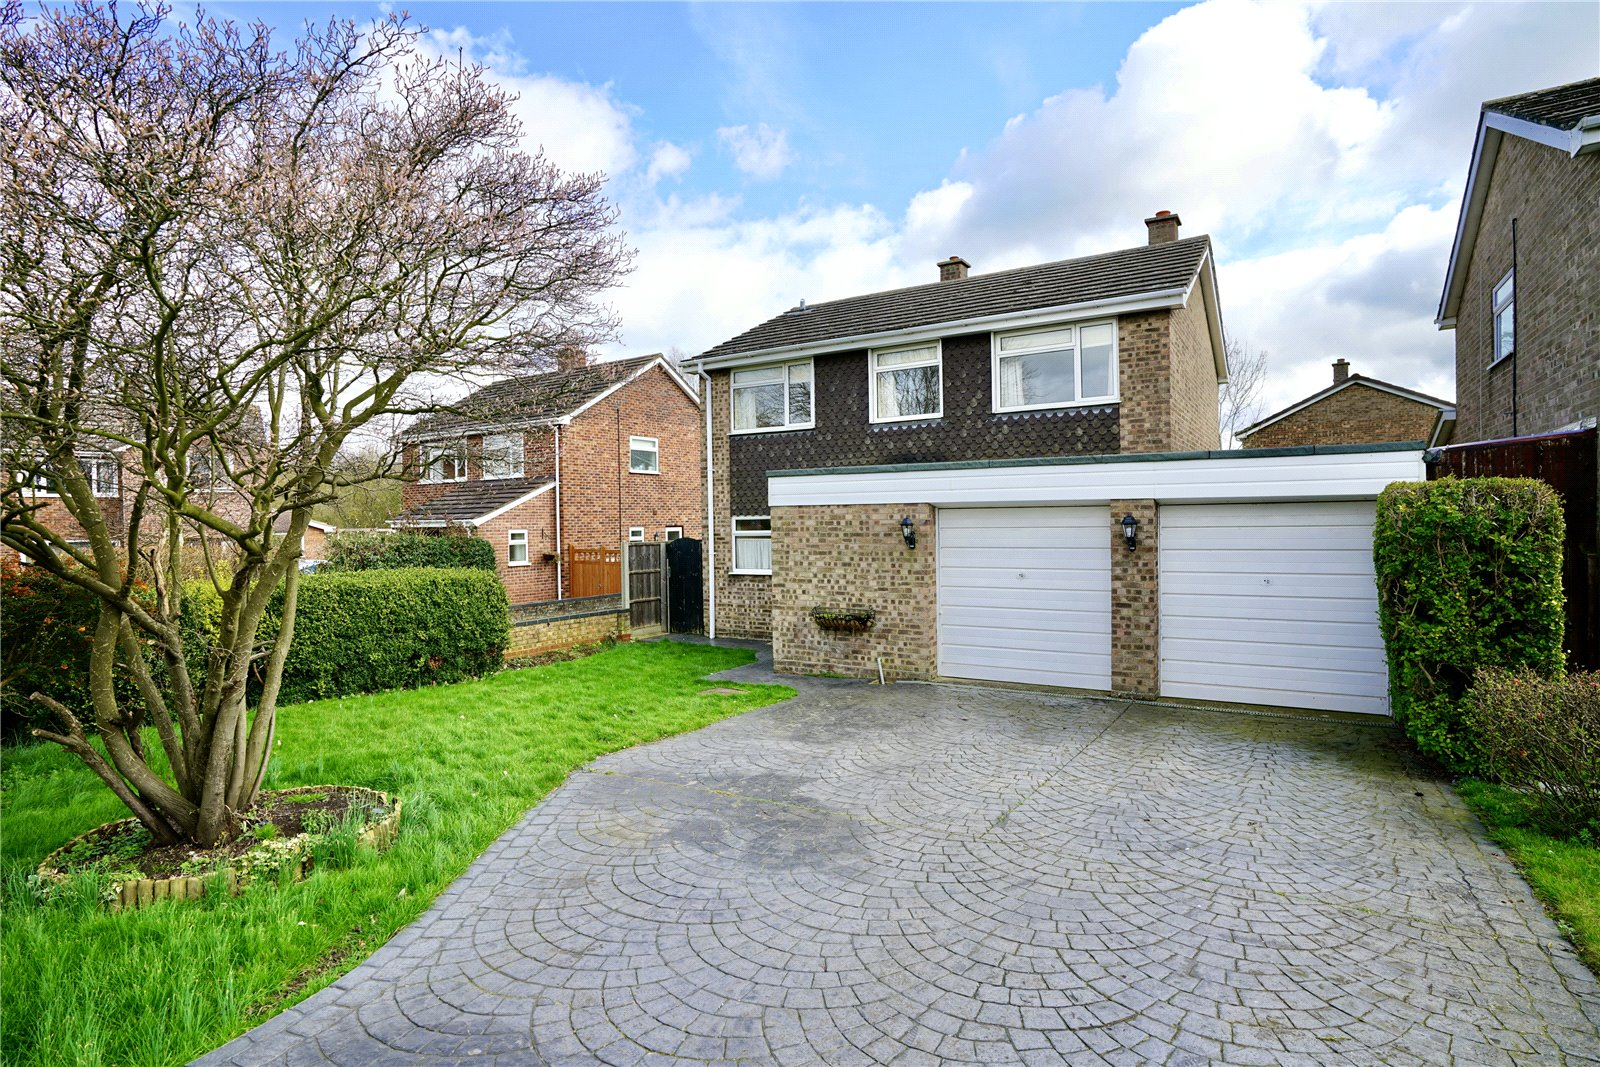 4 bed house for sale in Manor Close, Great Staughton, PE19